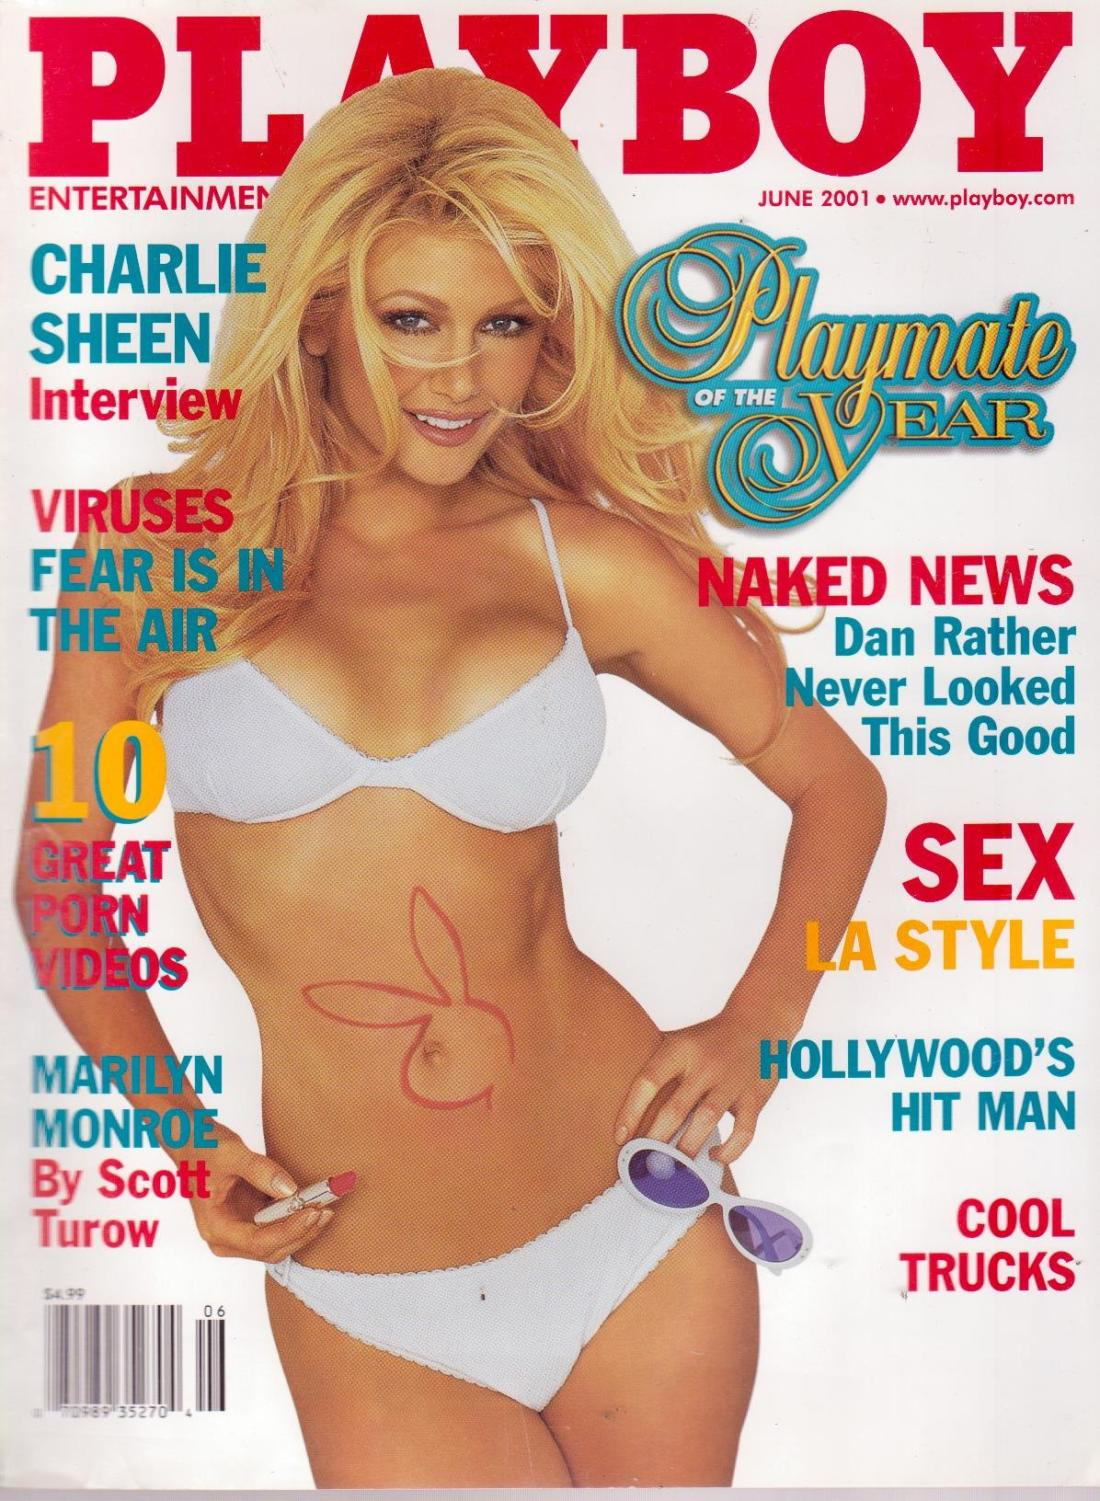 Brande Roderick was playmate of the year before becoming a successful actress and businesswoman.